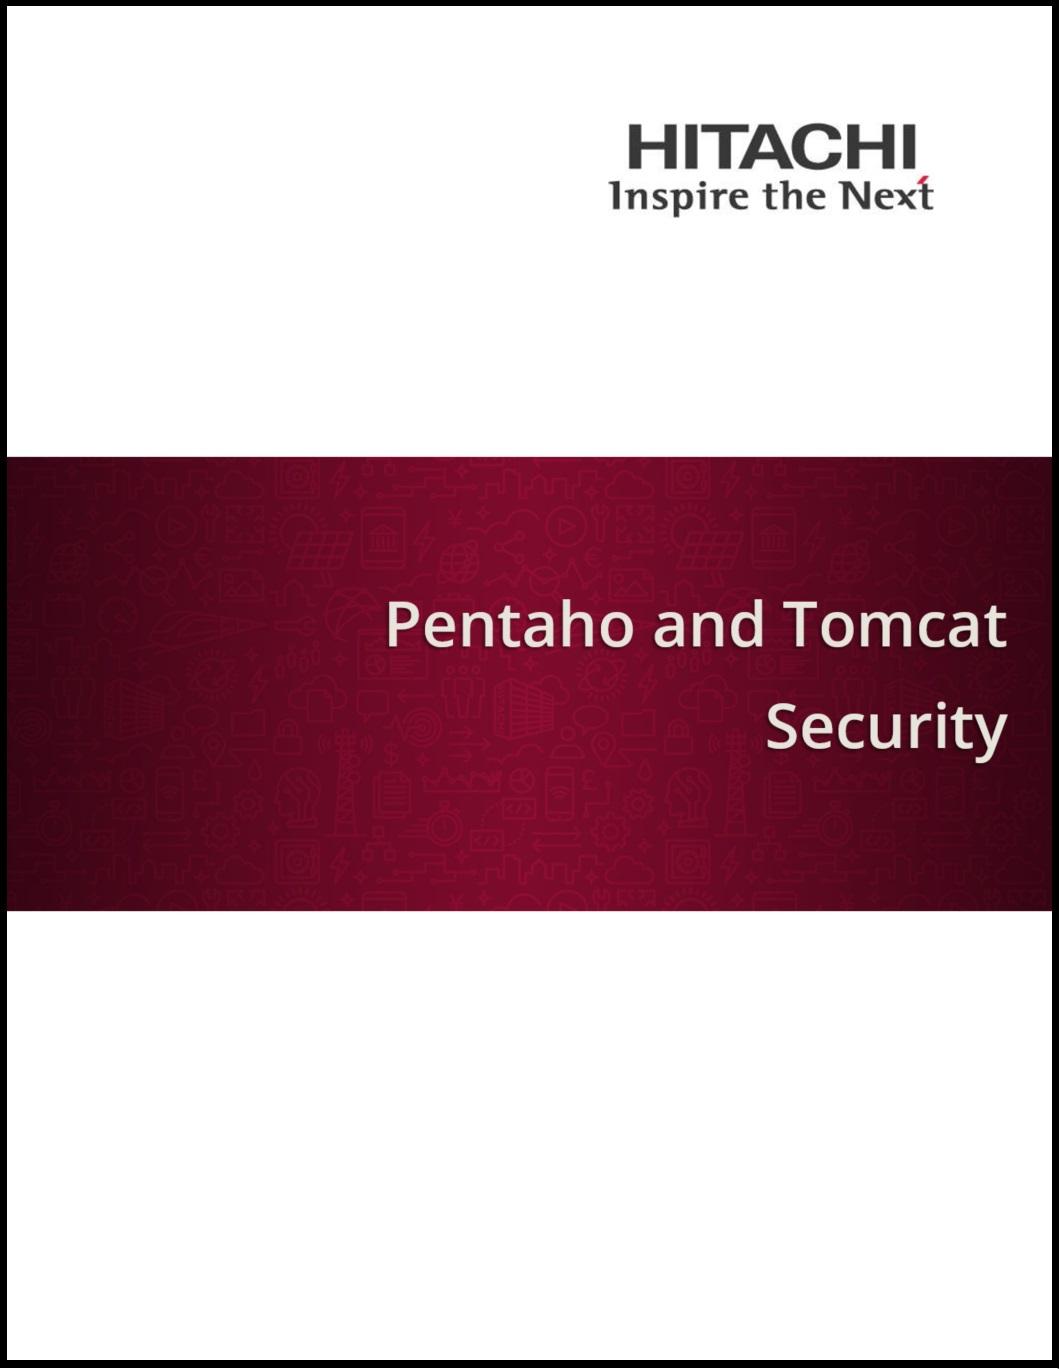 Pentaho_and_Tomcat_Security.jpg